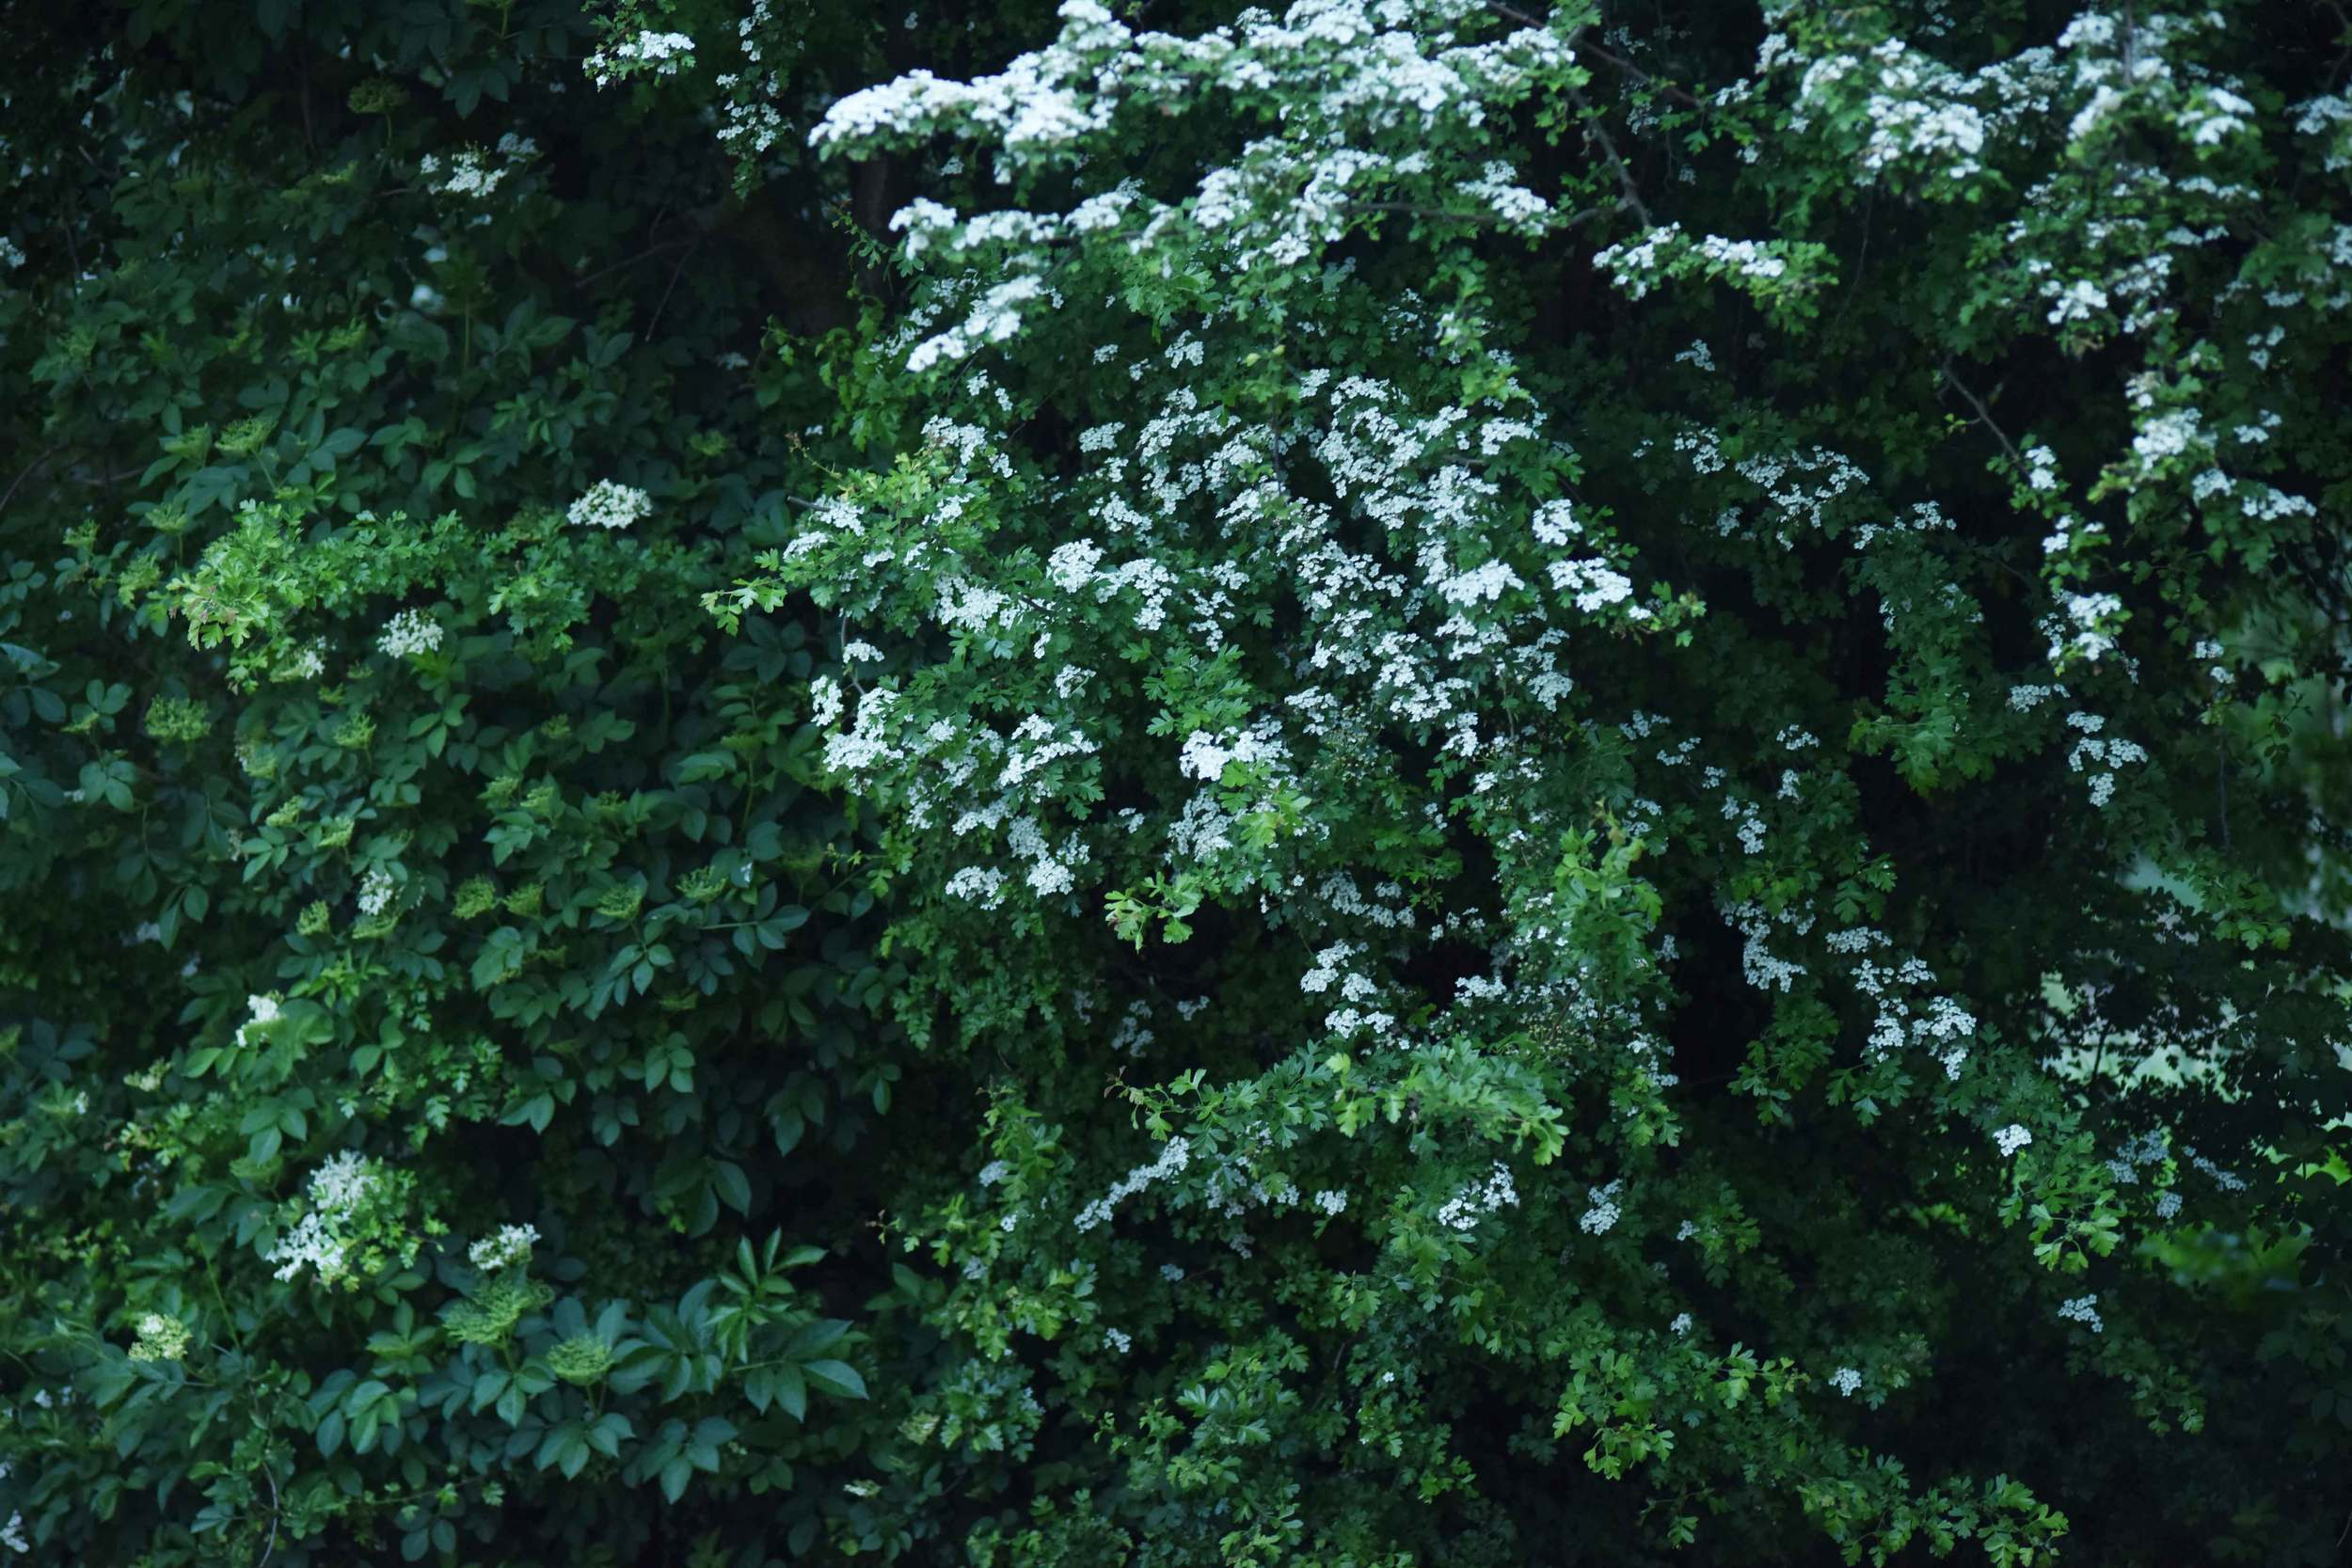 white flowers, spring blossoms. Image©sourcingstyle.com, photo: Nicola Nolting